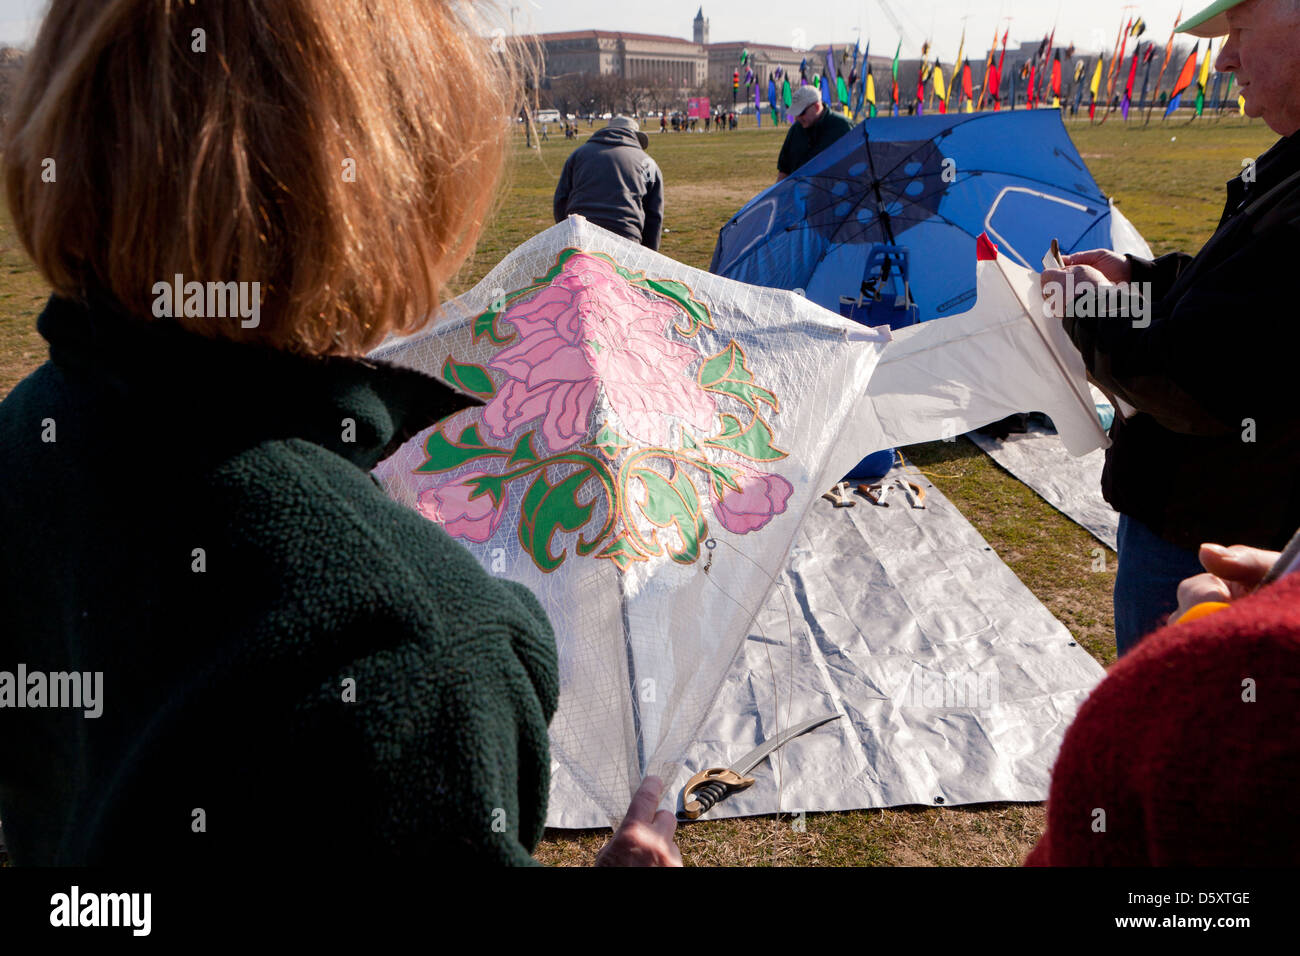 Woman holding a kite at festival - Stock Image